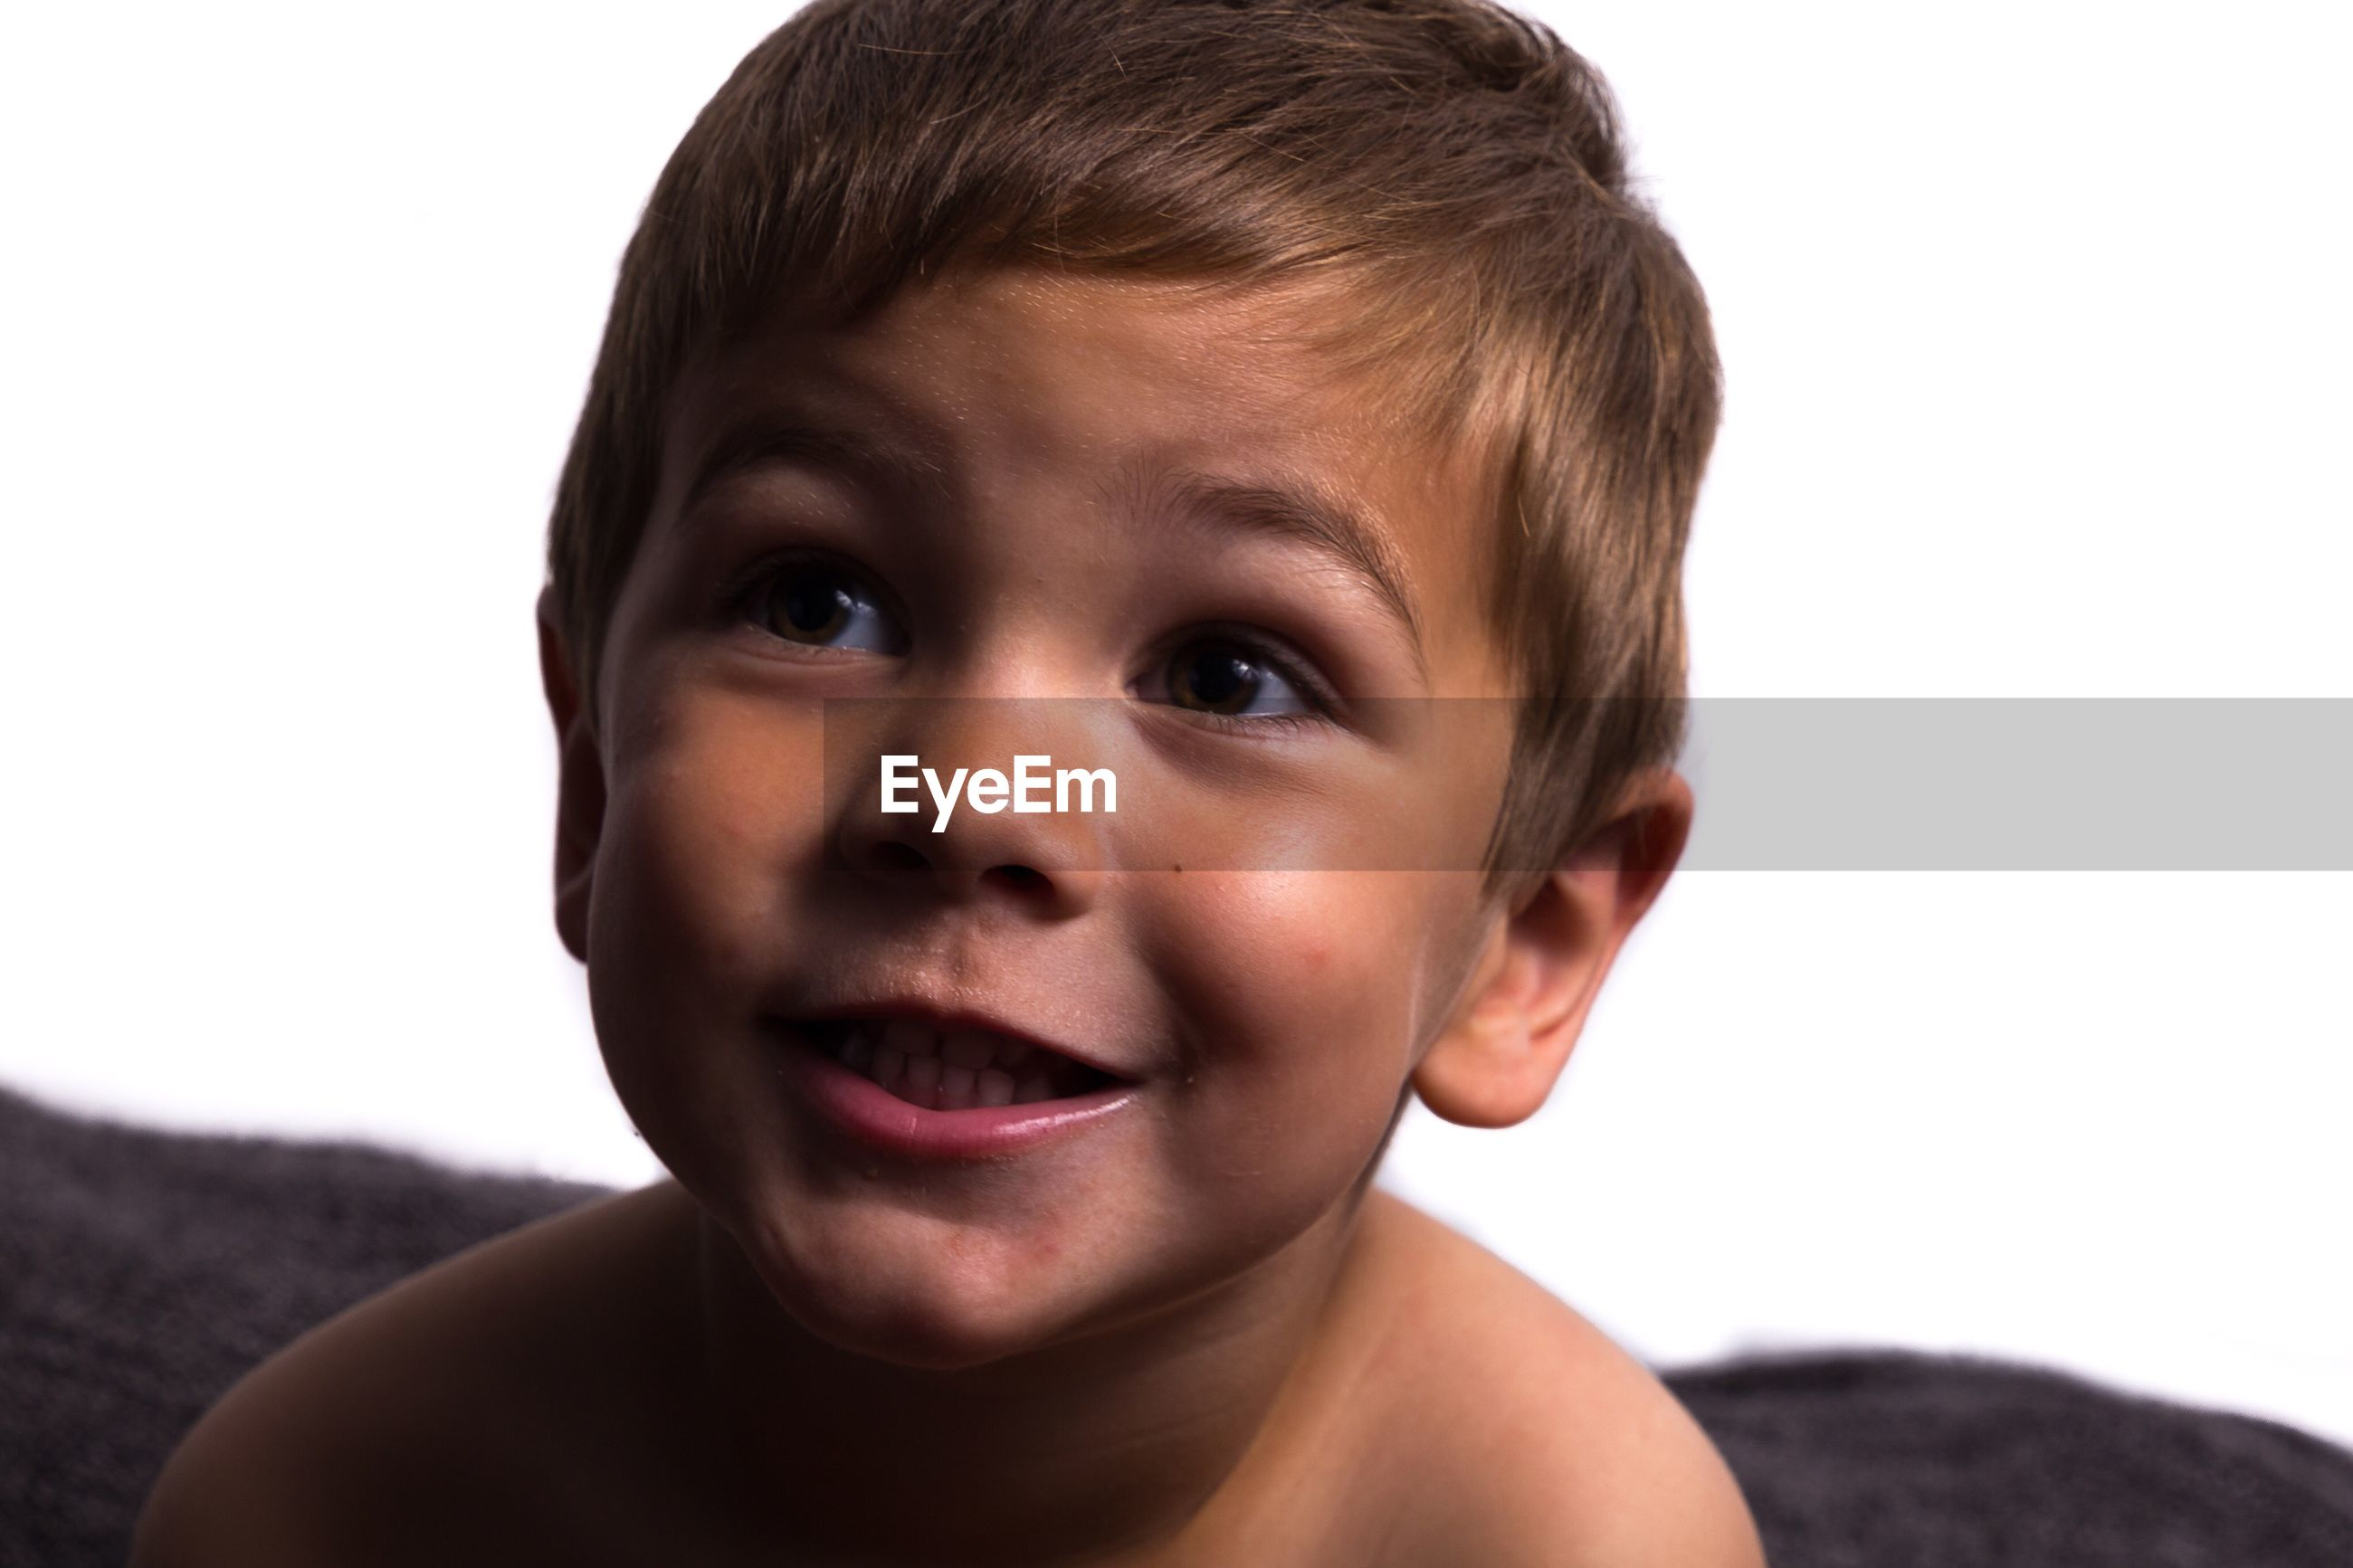 Close-up of shirtless boy looking away against white background